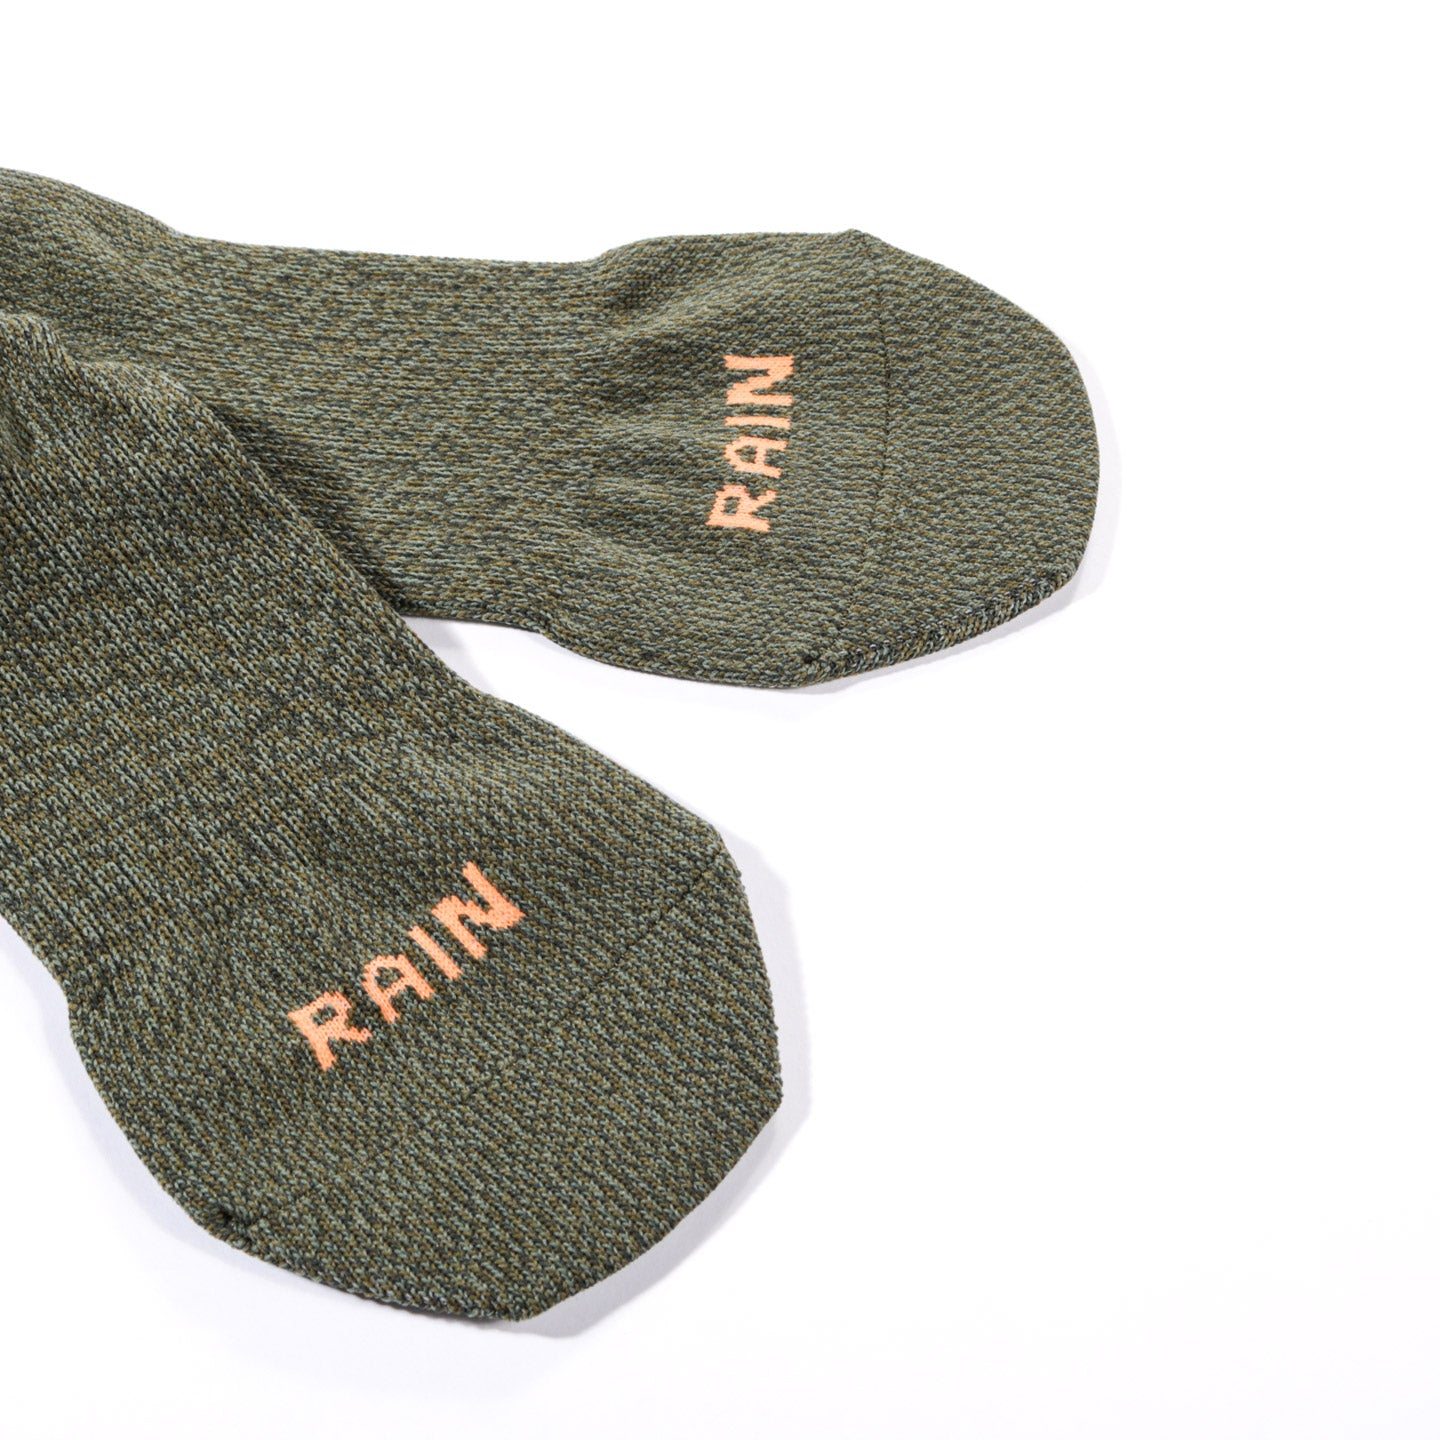 KAPITAL 144 YARNS SUPER-DRY HEEL SMILE SOCKS KHAKI